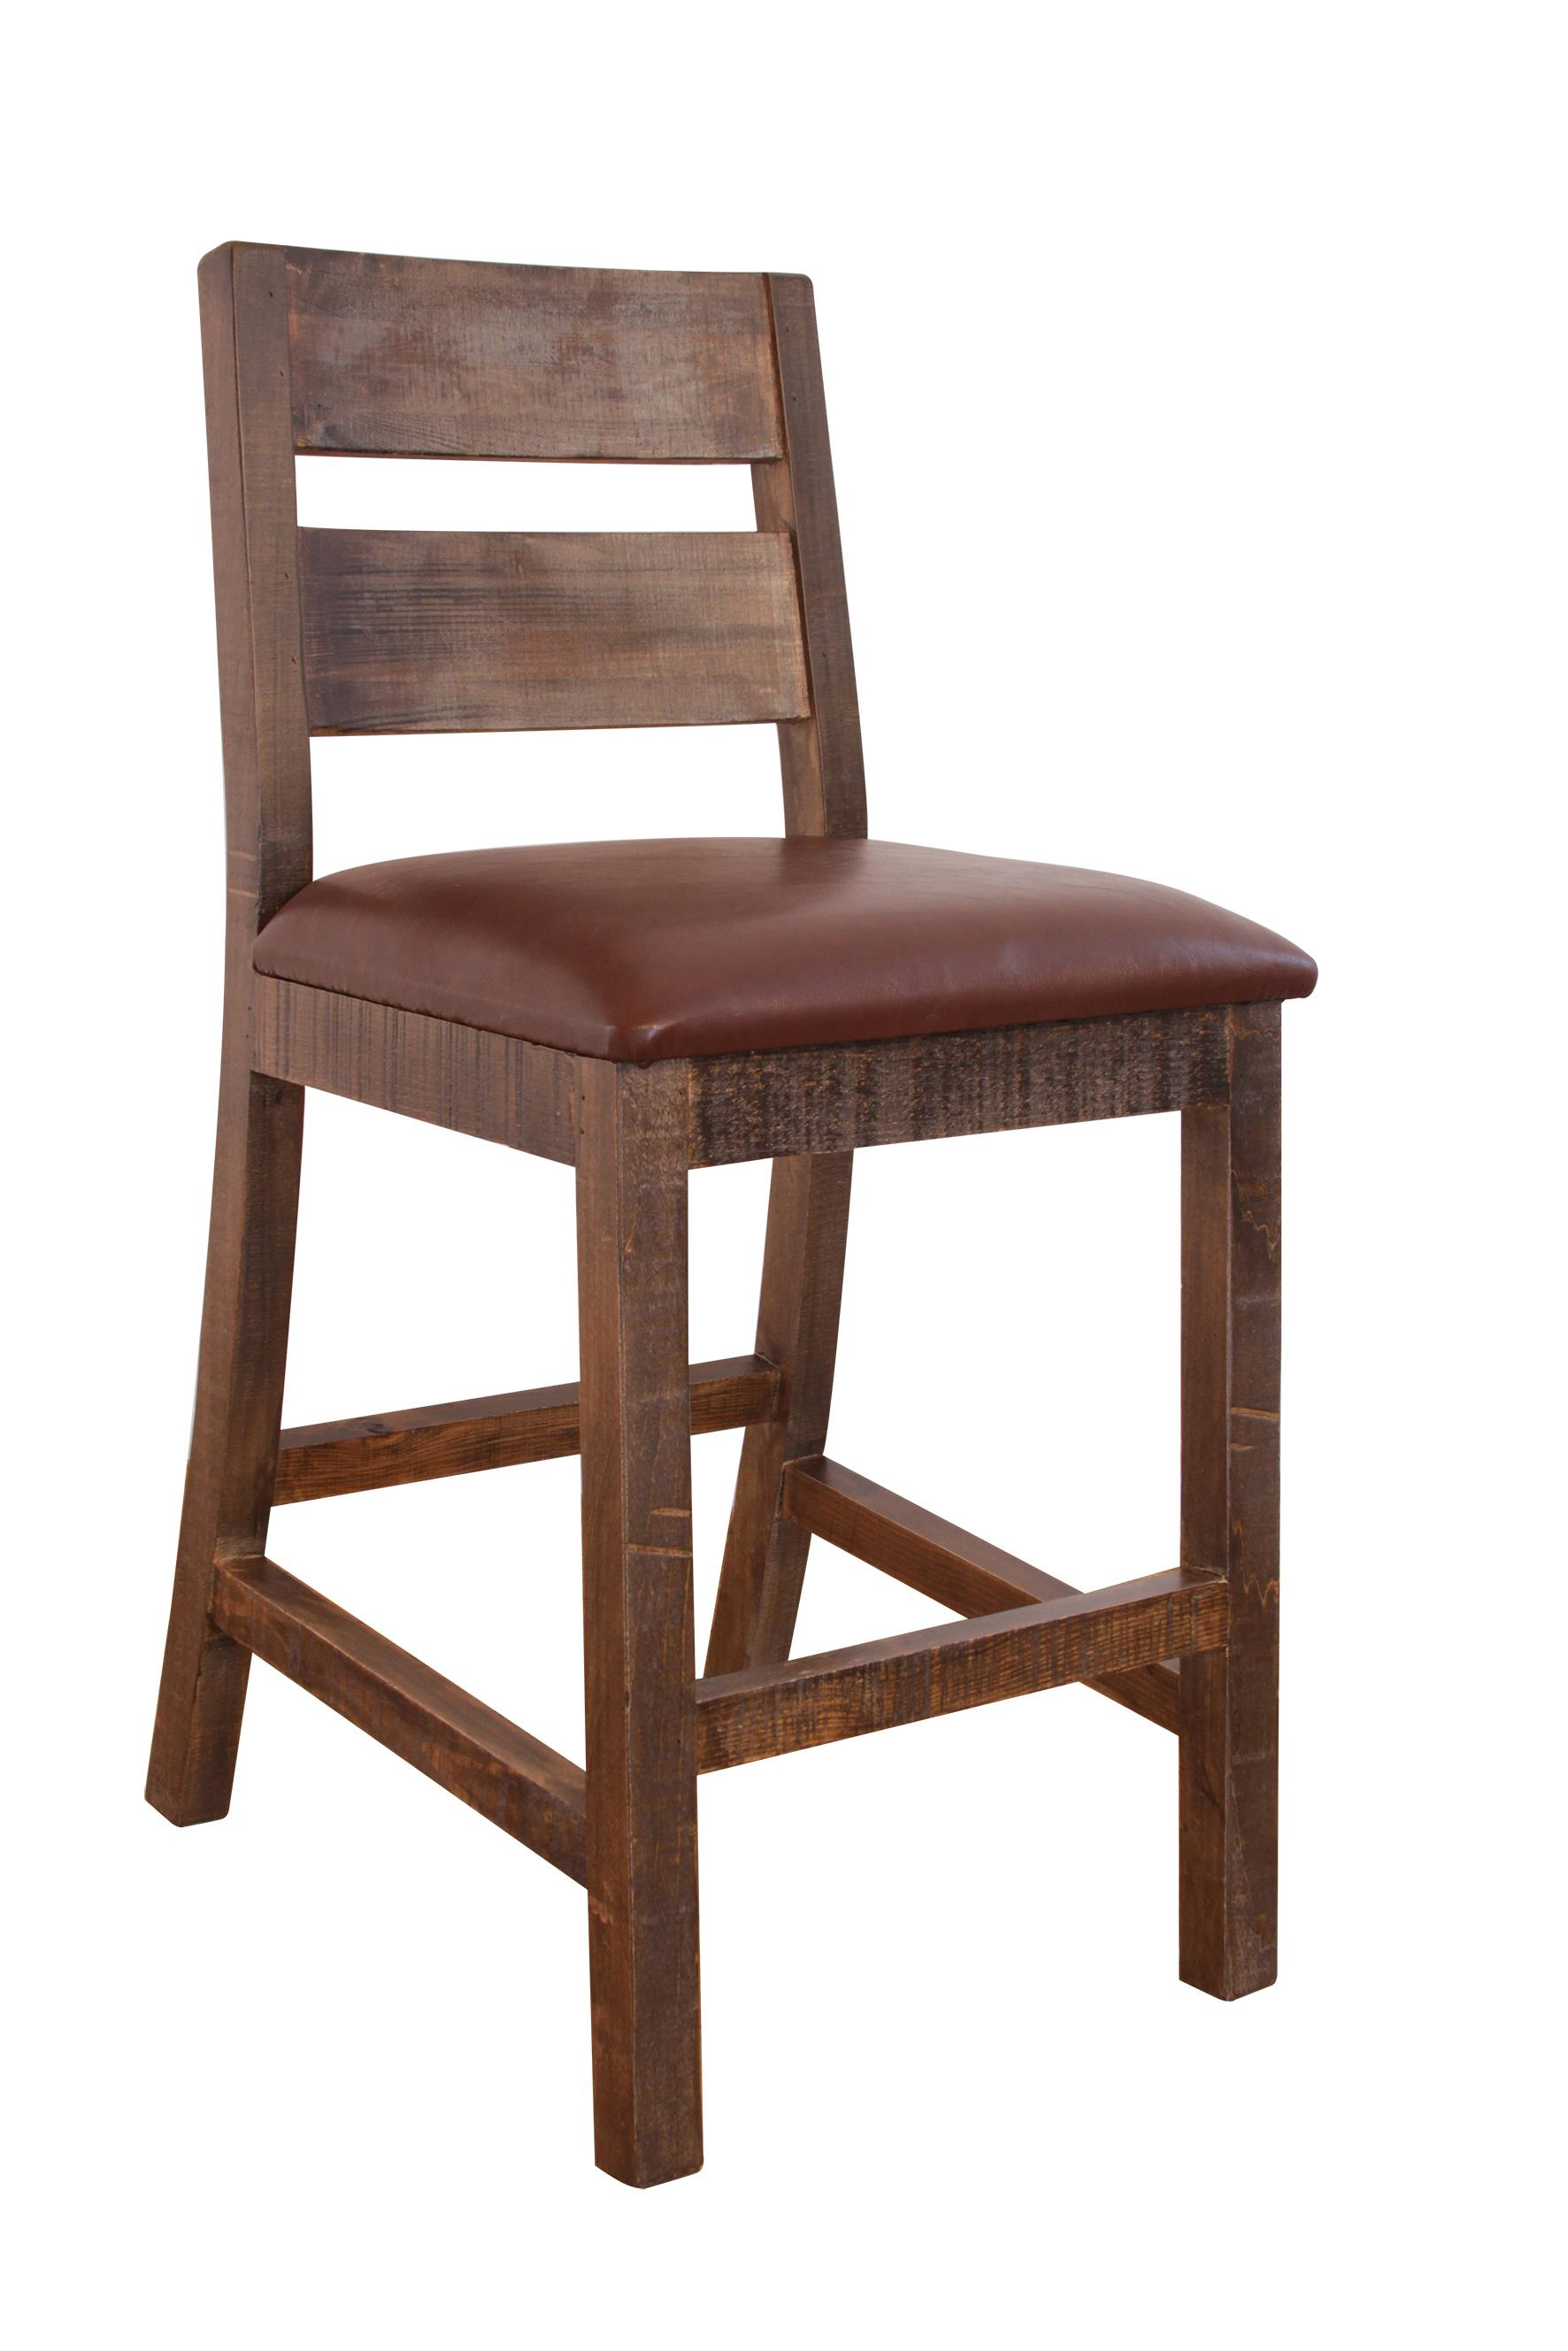 Artisan home bar stools counter height stool with ladder back suburban furniture bar stools Artisan home furniture bar stools